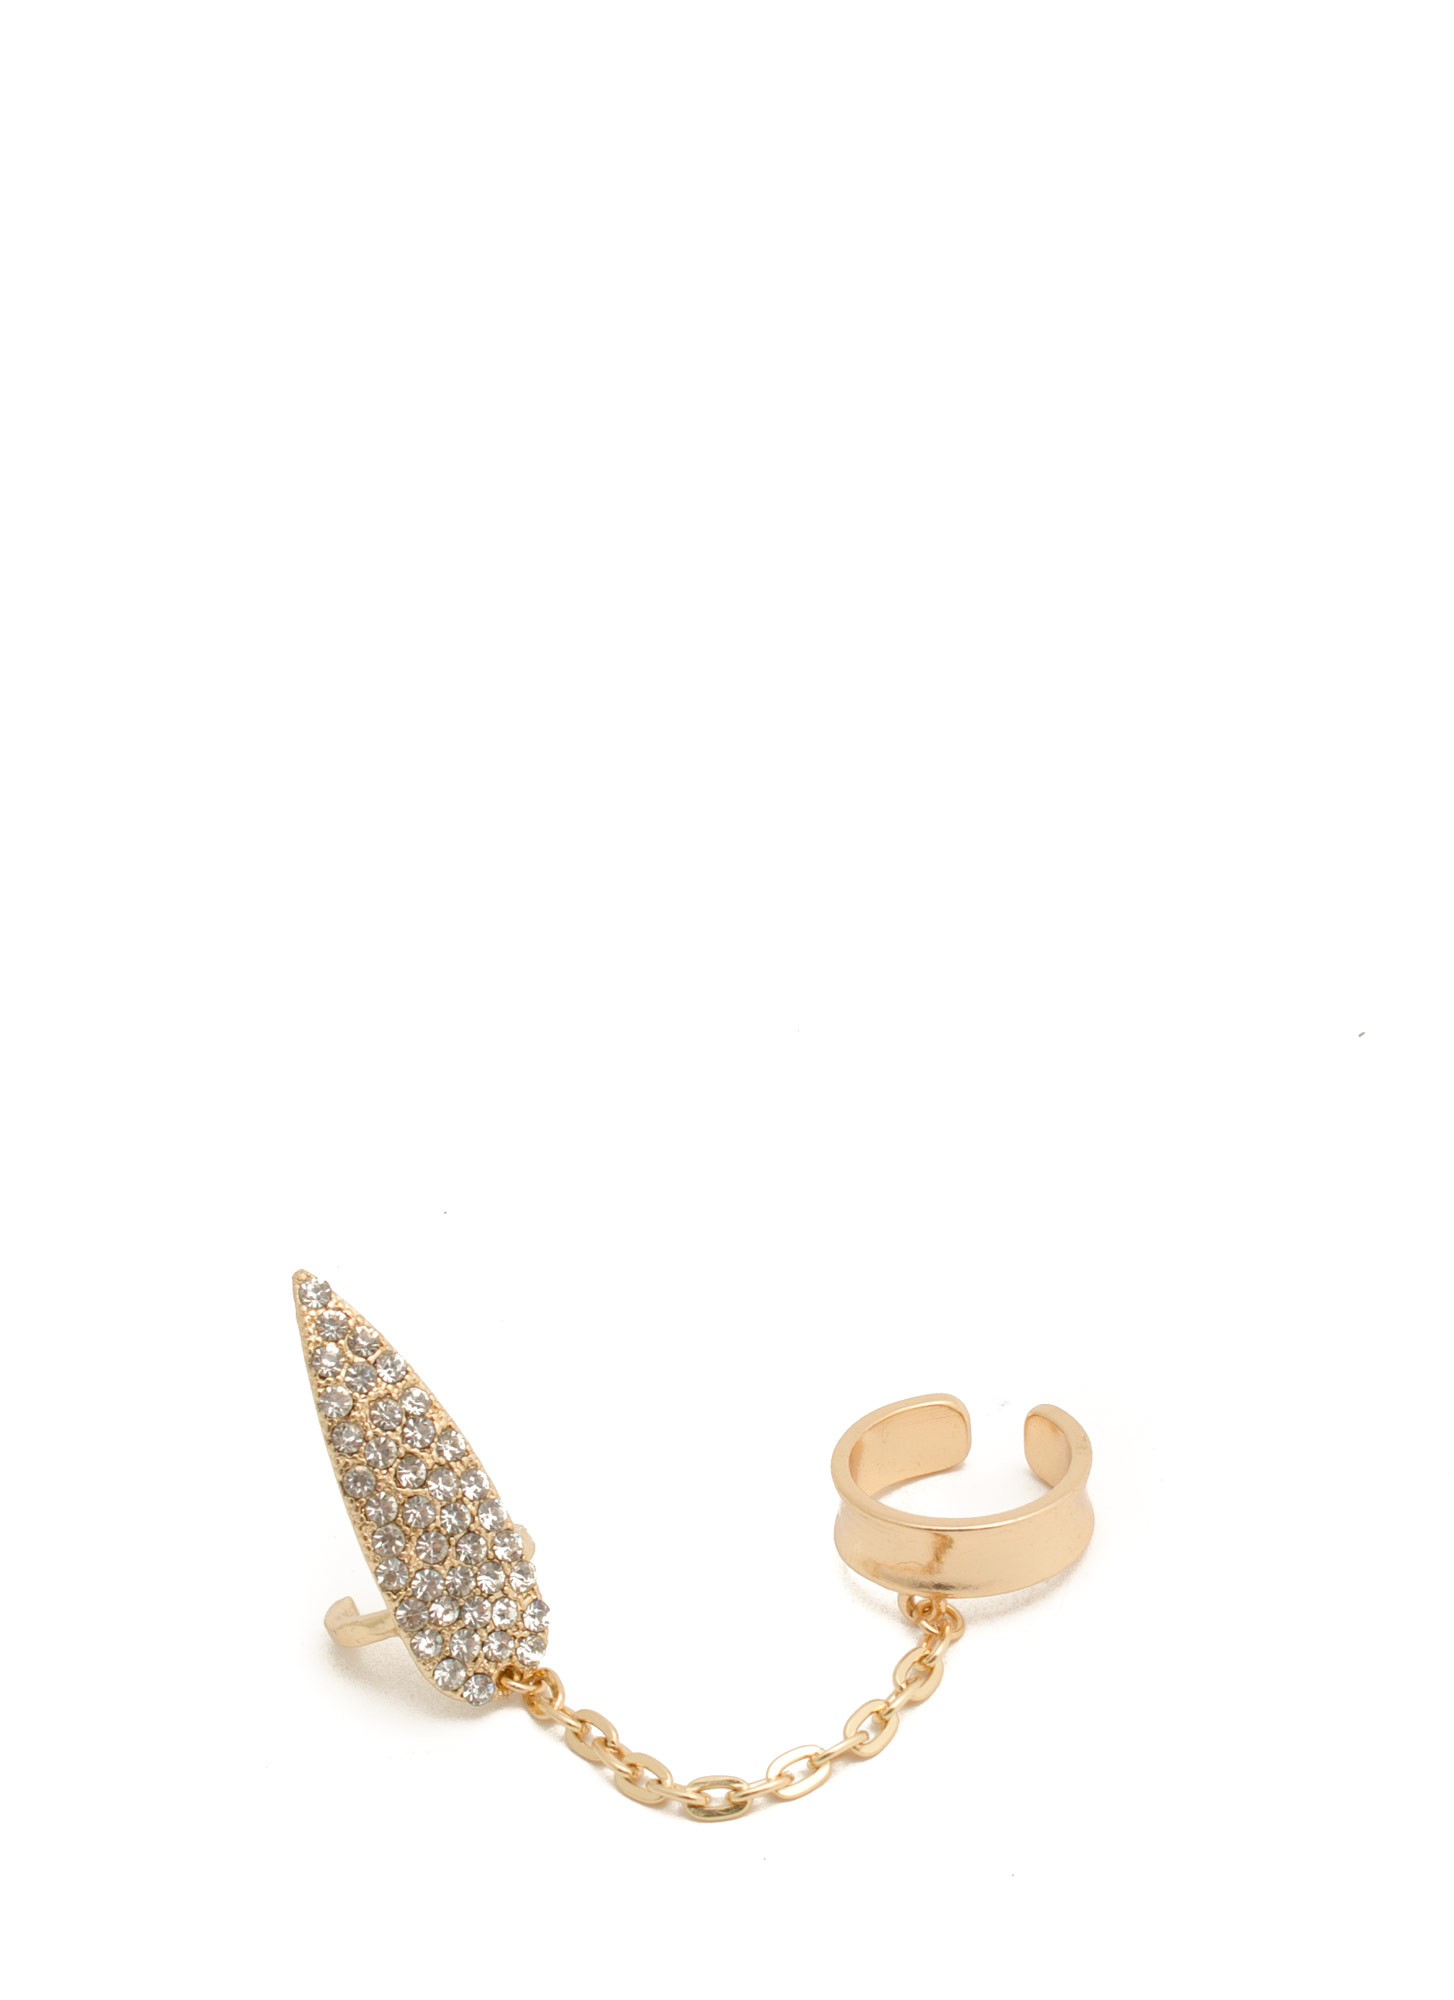 Rhinestone Spear Chain Nail Ring Set GOLD